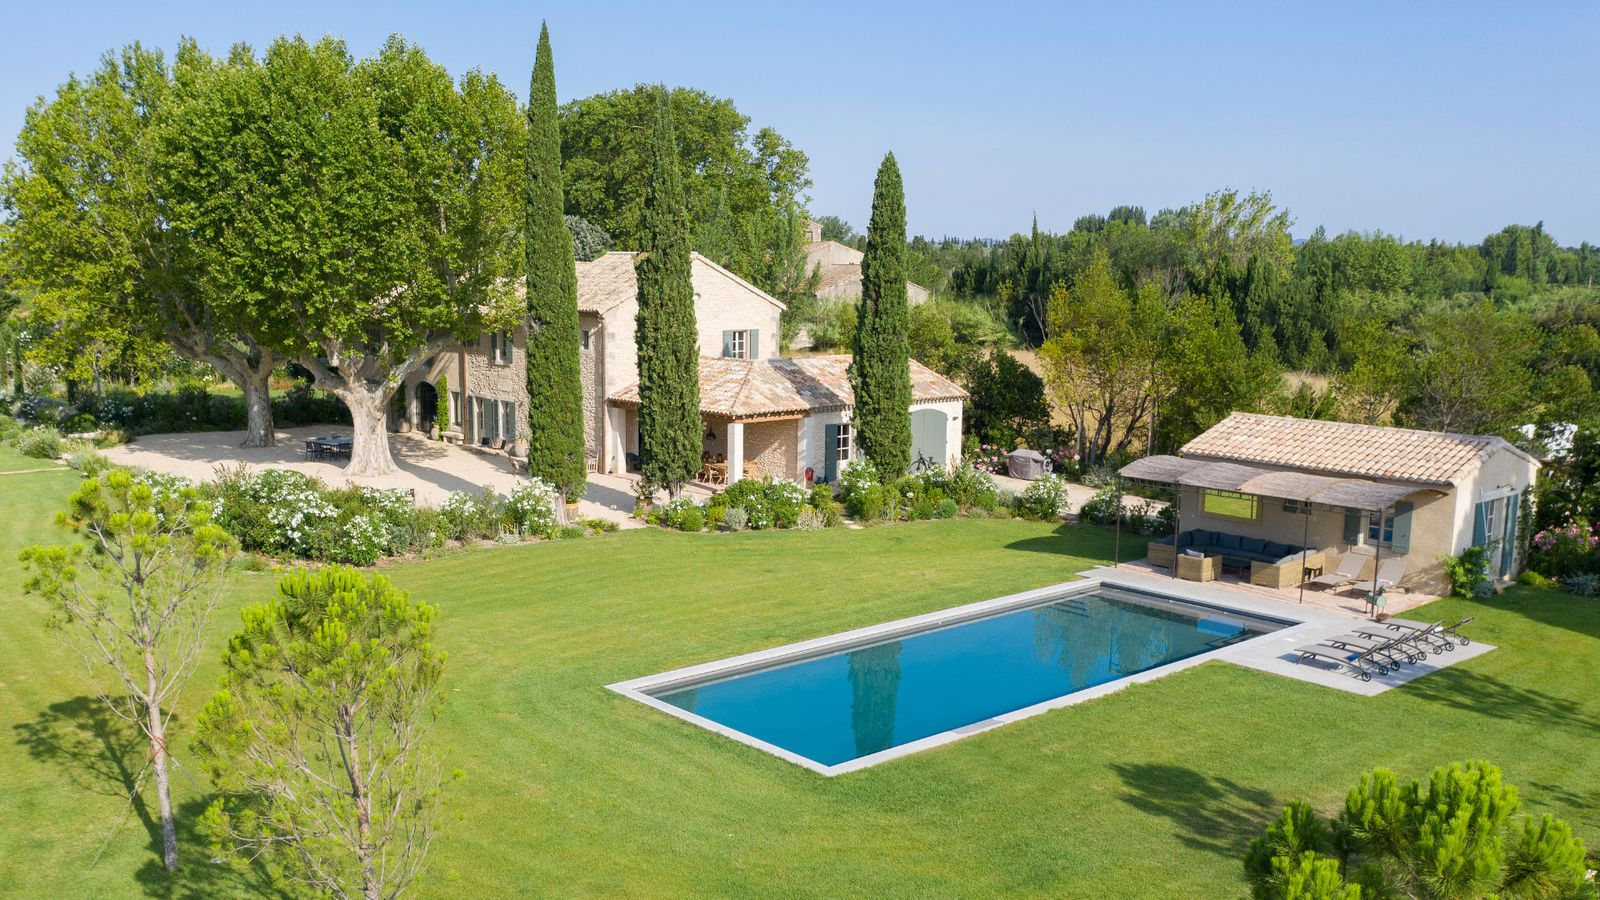 Location de luxueuses Villas à Saint-Rémy-de-Provence piscine privée